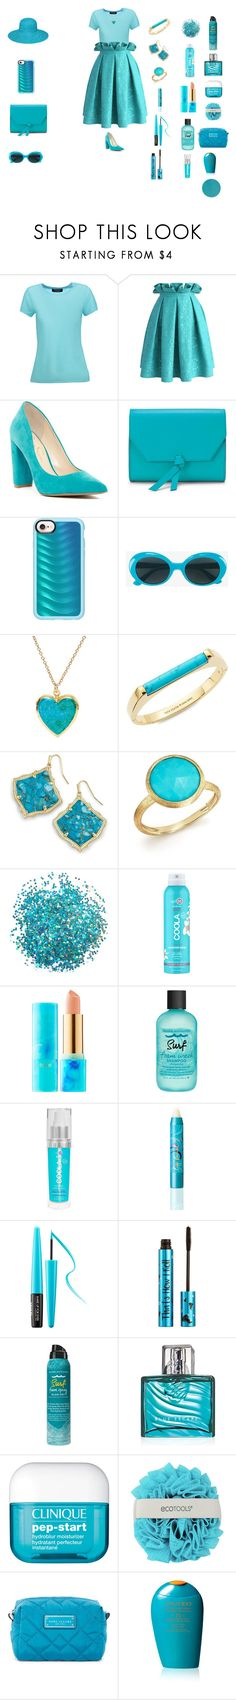 """Dazzling aquipting"" by sierracook14 ❤ liked on Polyvore featuring Magaschoni, Chicwish, Jessica Simpson, Alexandra de Curtis, Casetify, Yves Saint Laurent, Kate Spade, Kendra Scott, Marco Bicego and COOLA Suncare"